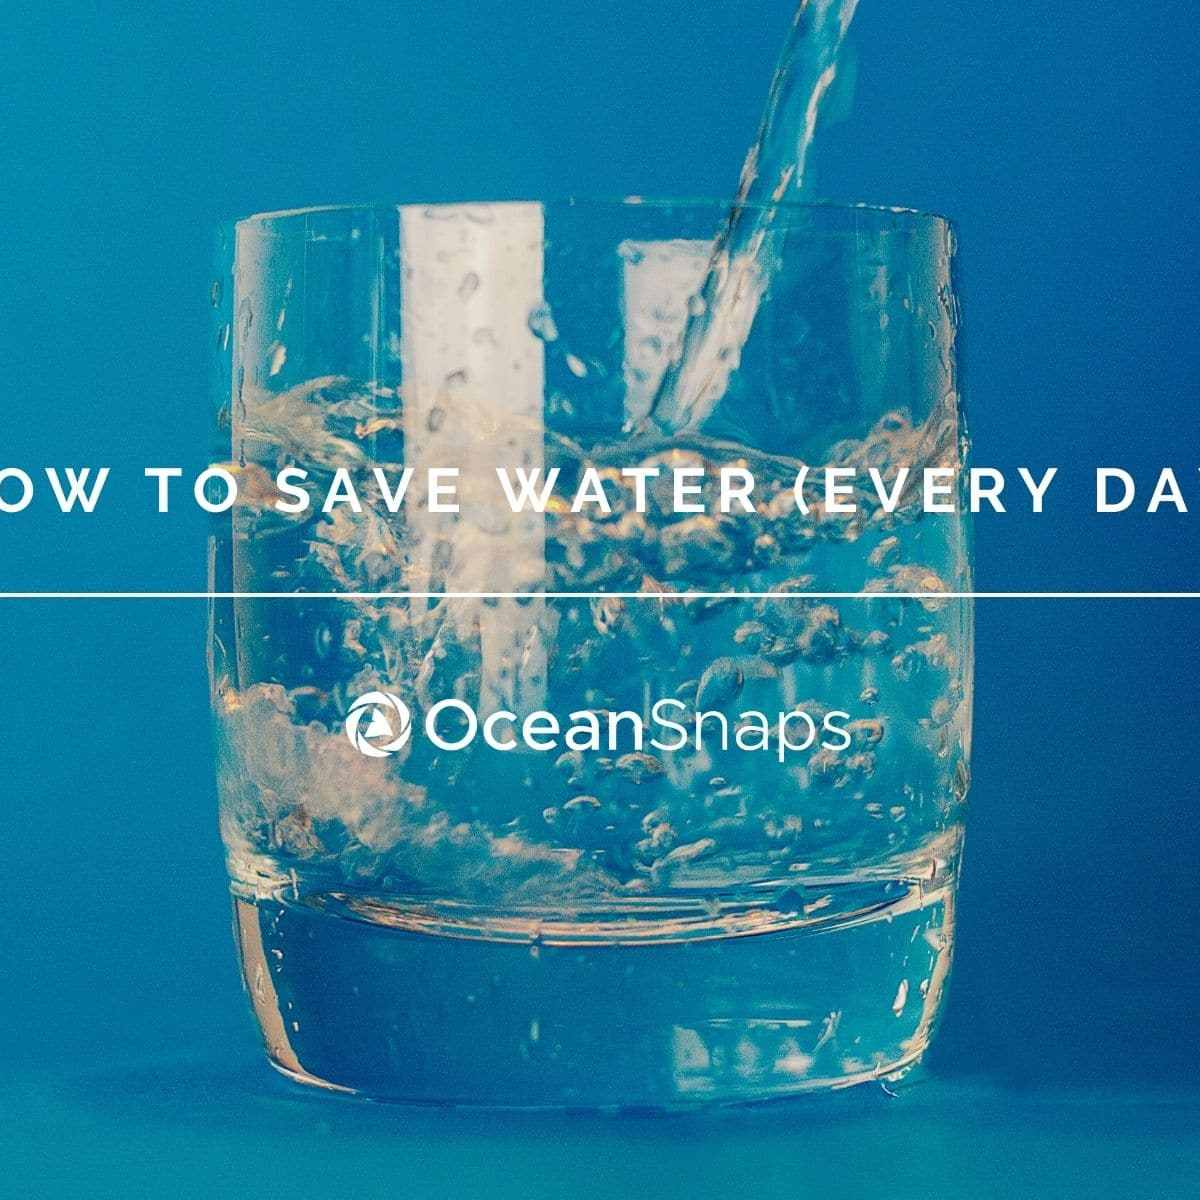 How to save water (every day)